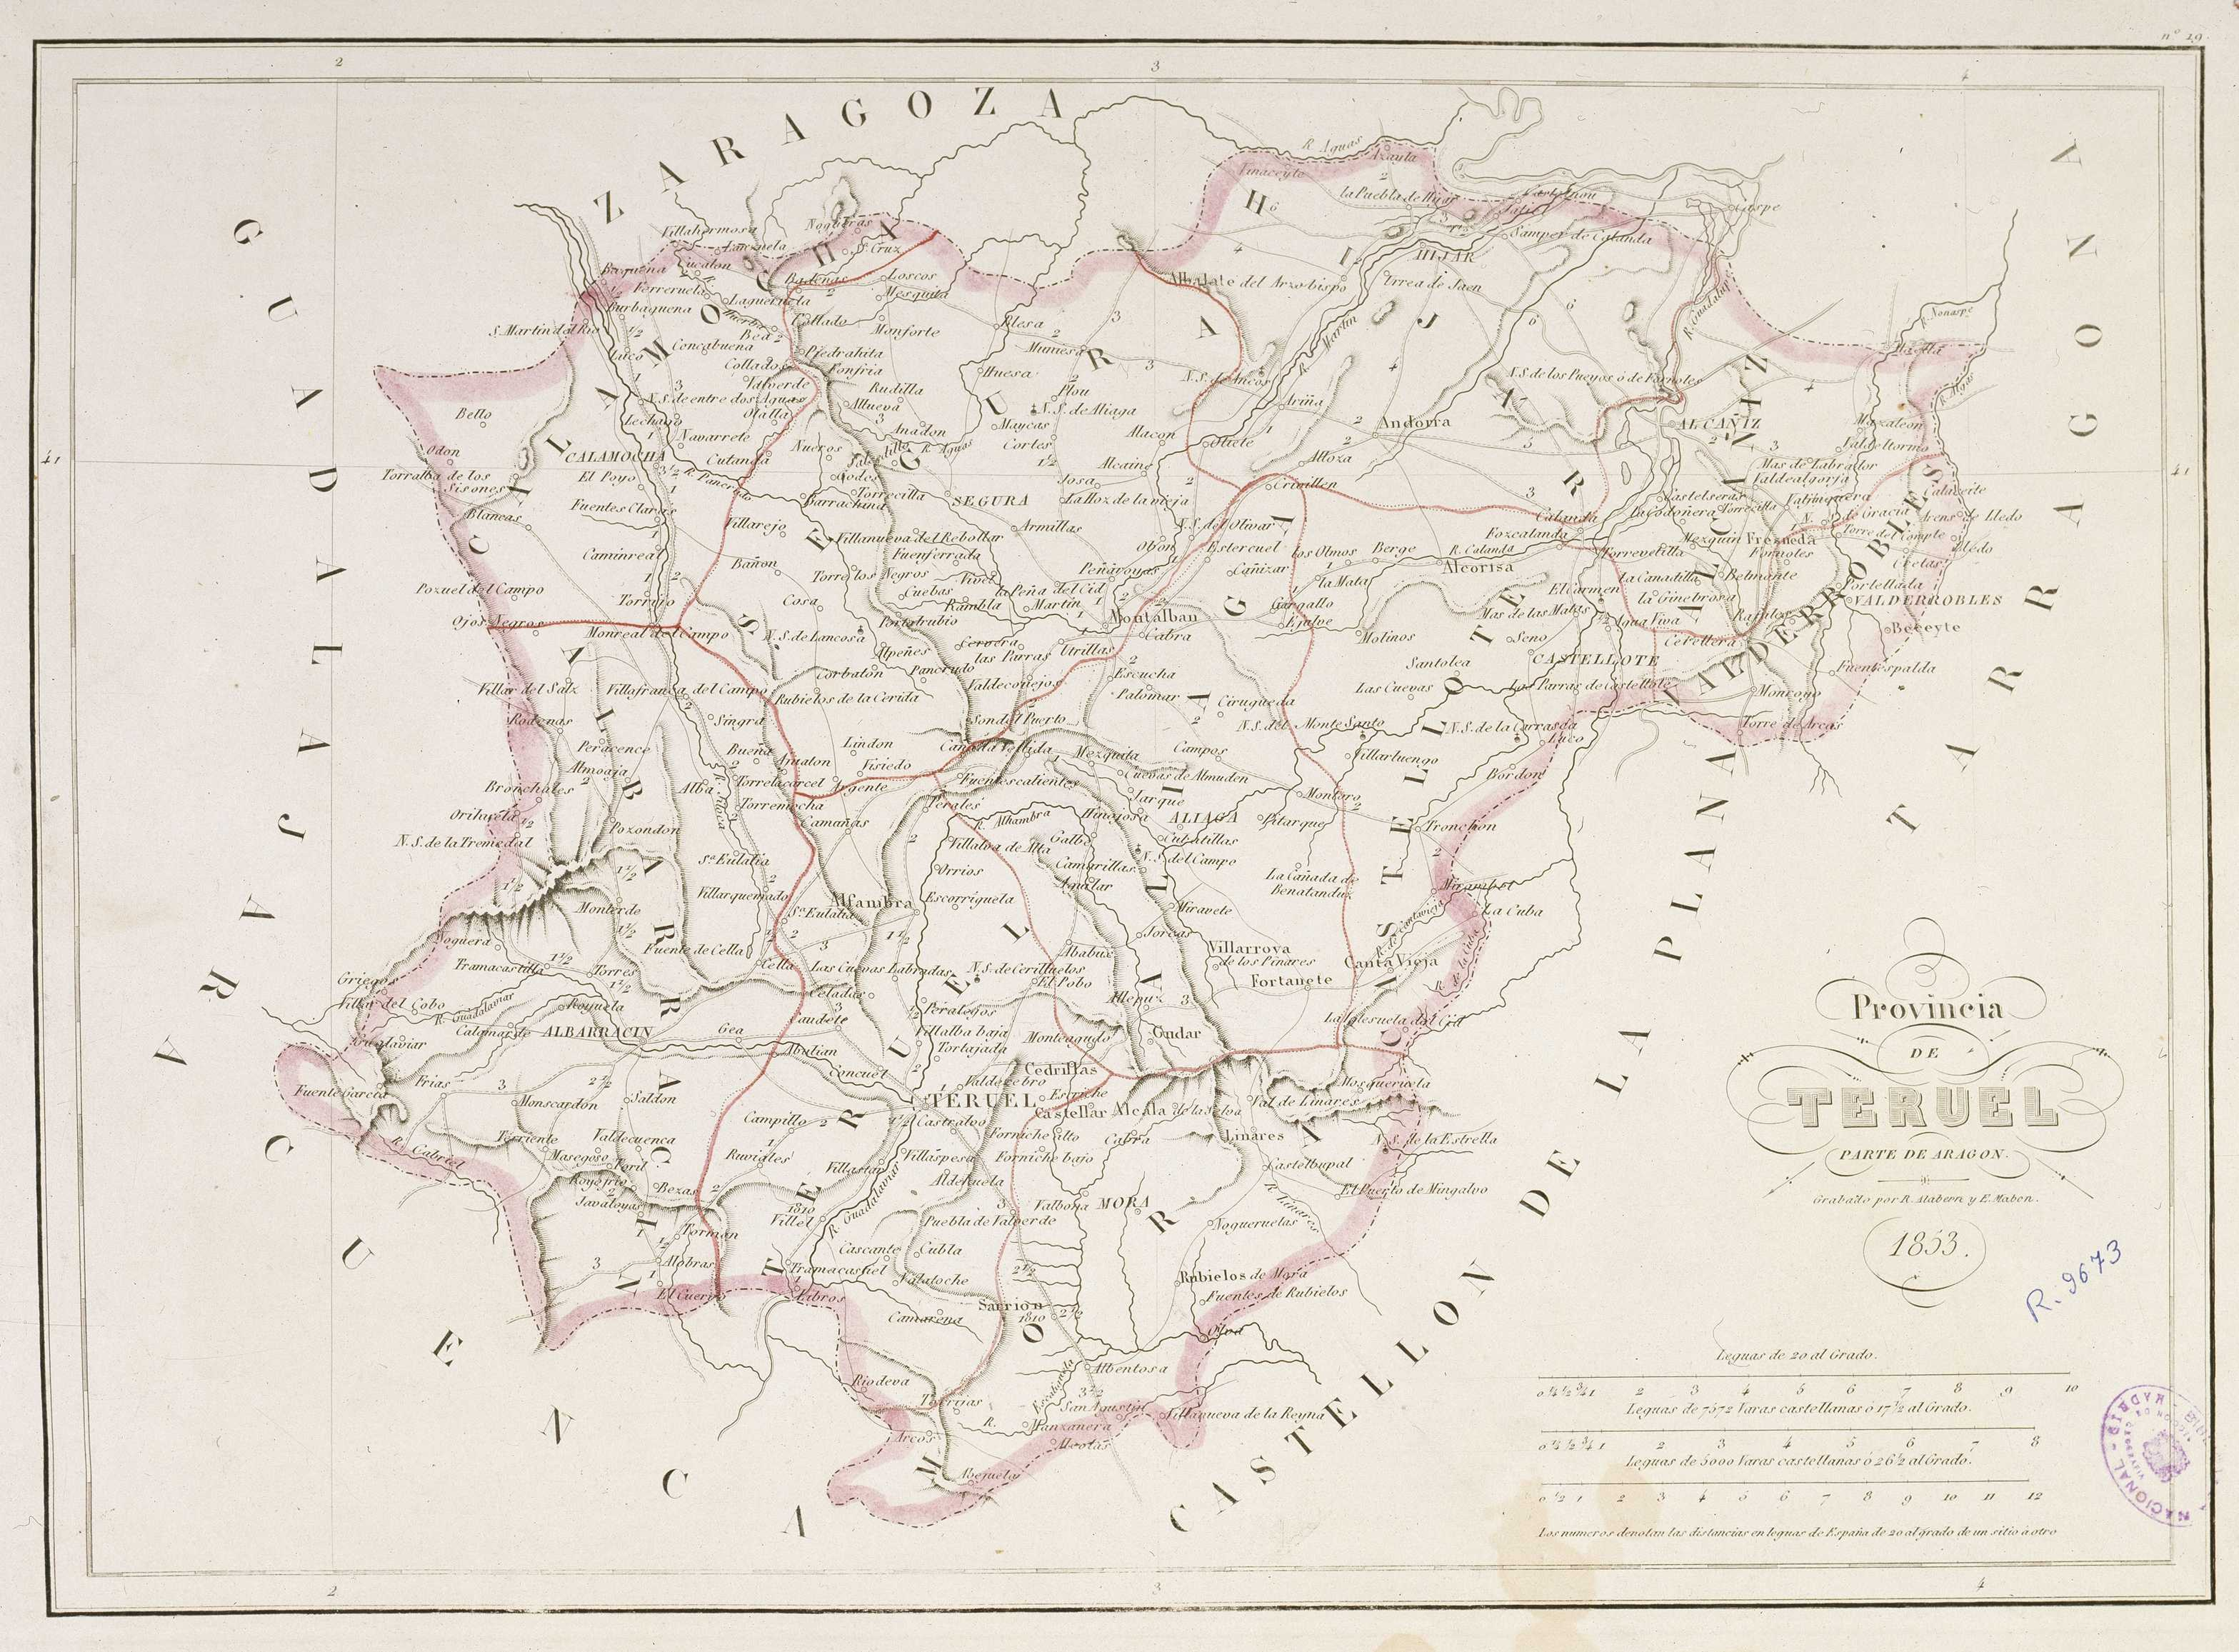 Province of Teruel 1853